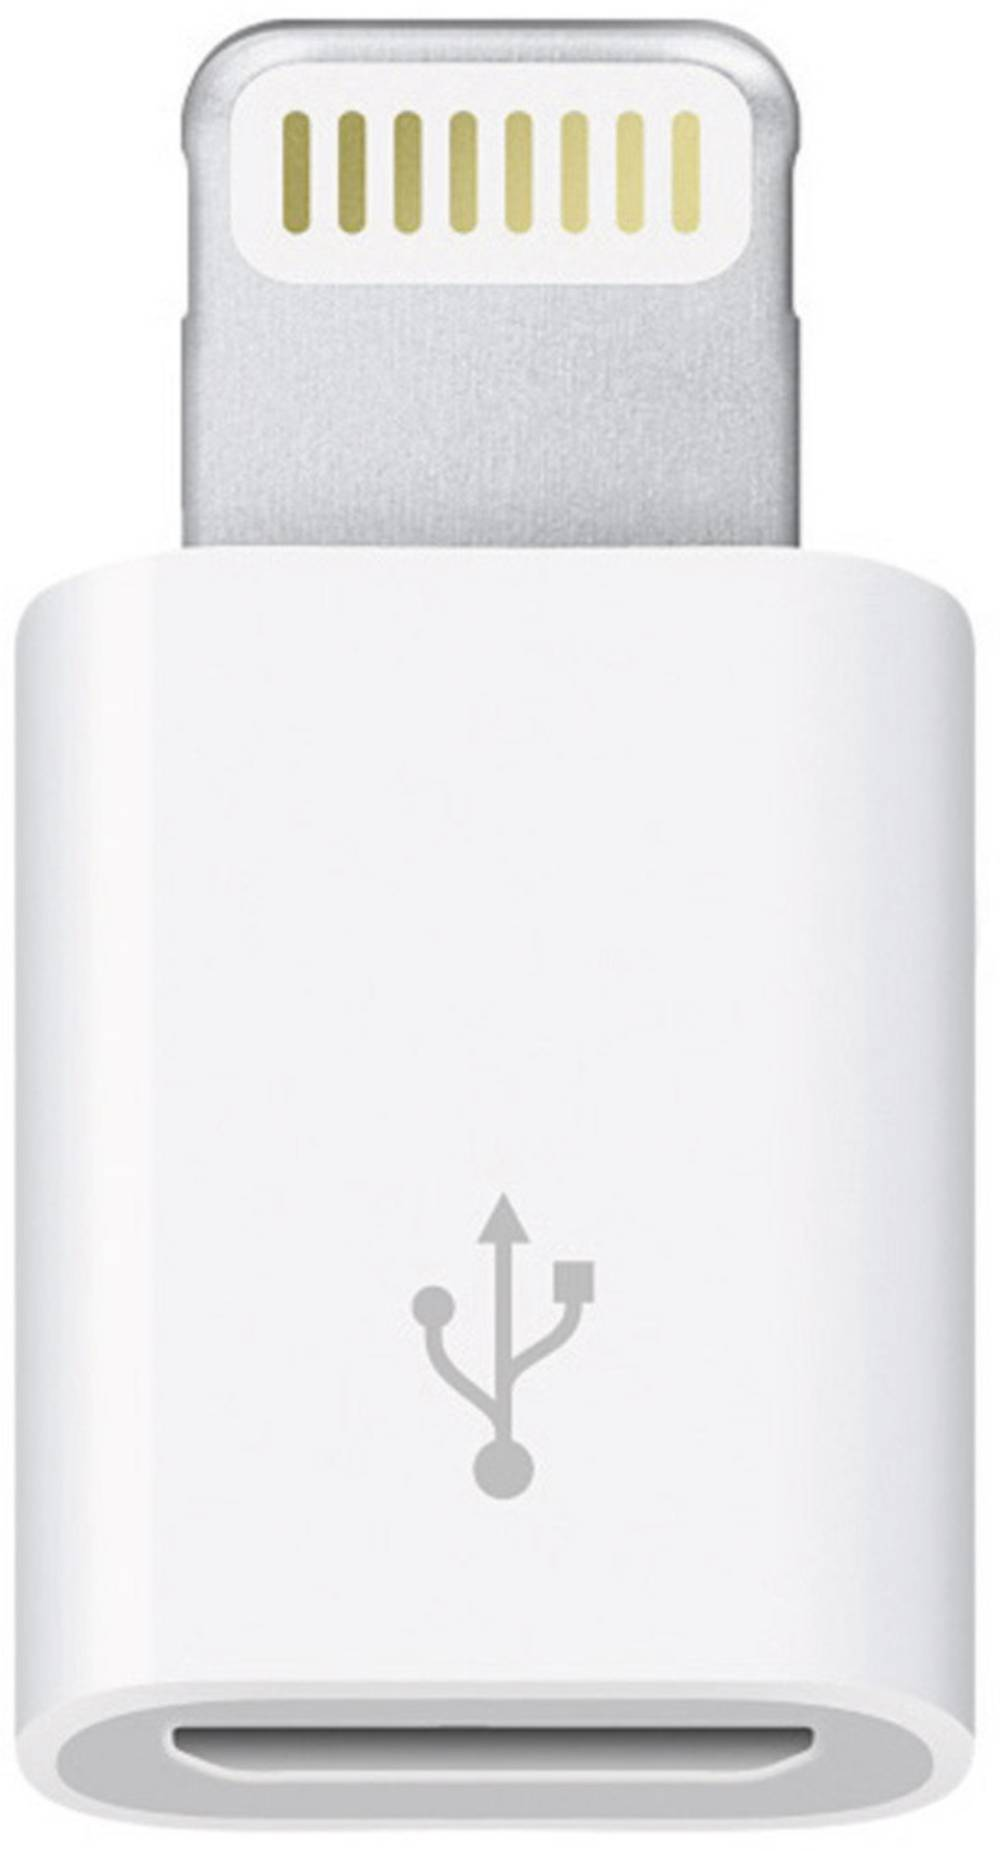 USB adapter Apple za iPod/iPhone/iPad [-] Lightning na Micro USB adapter (razsuti tovor/OEM) MD820ZM/A